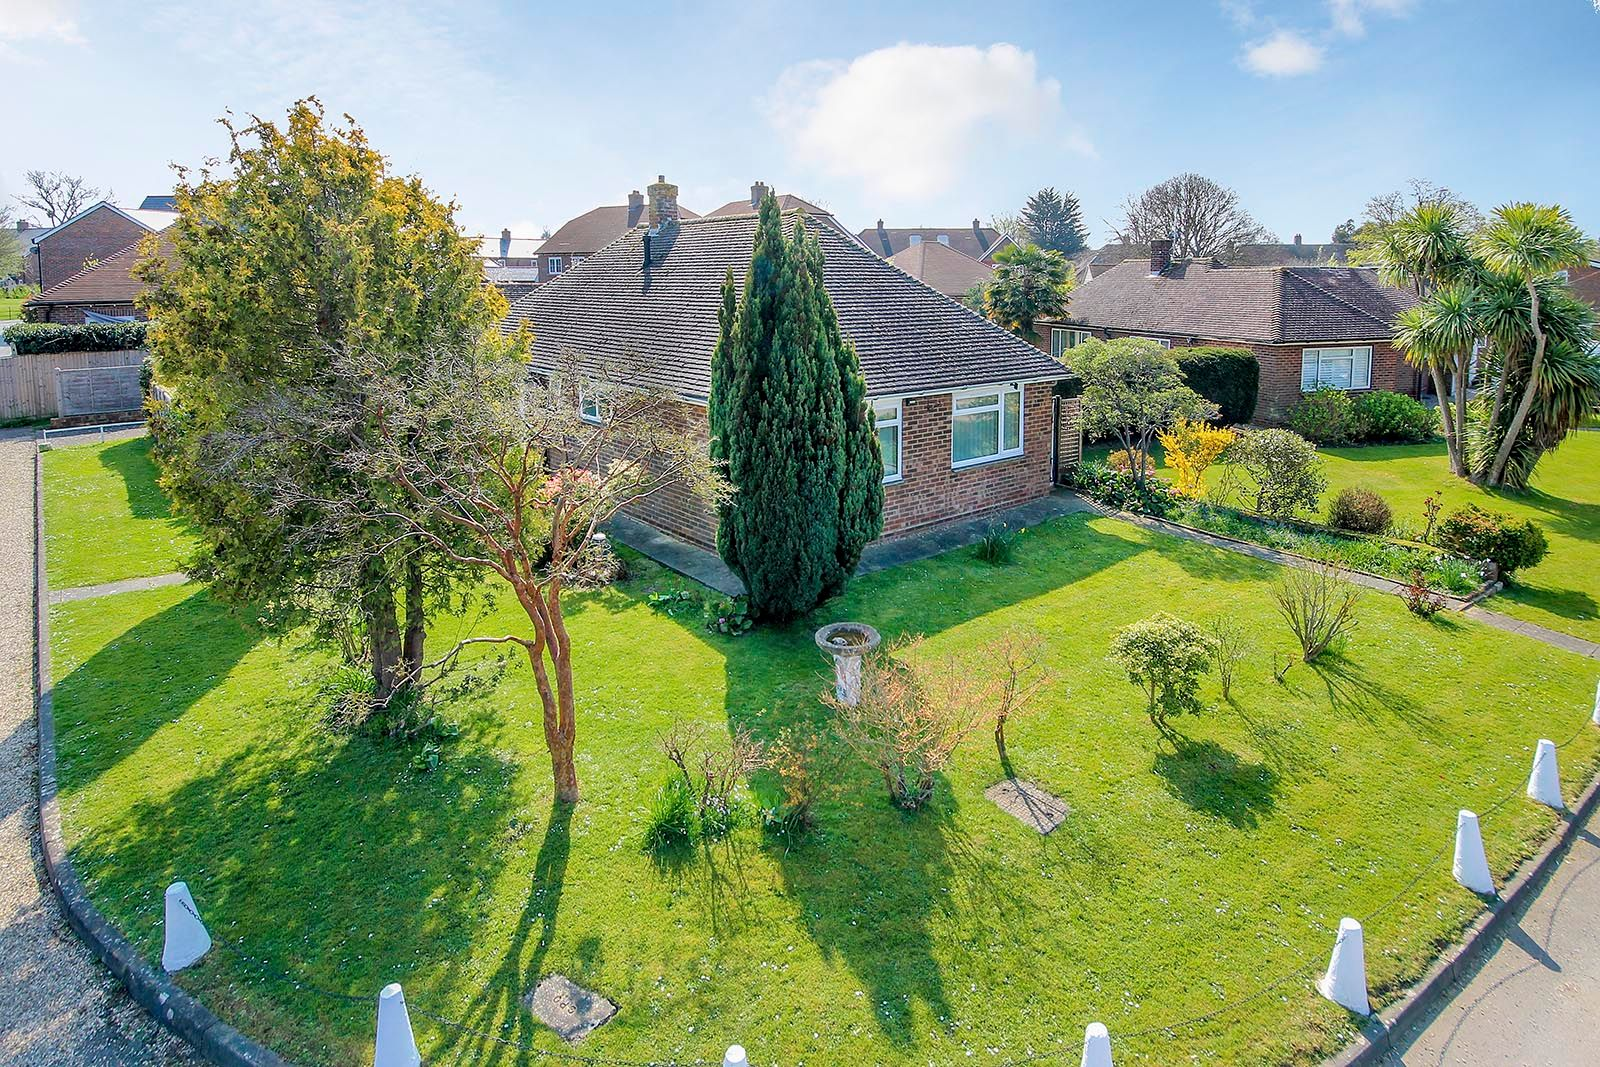 2 bed bungalow for sale in Halliford Drive (COMP AUG 19) 1